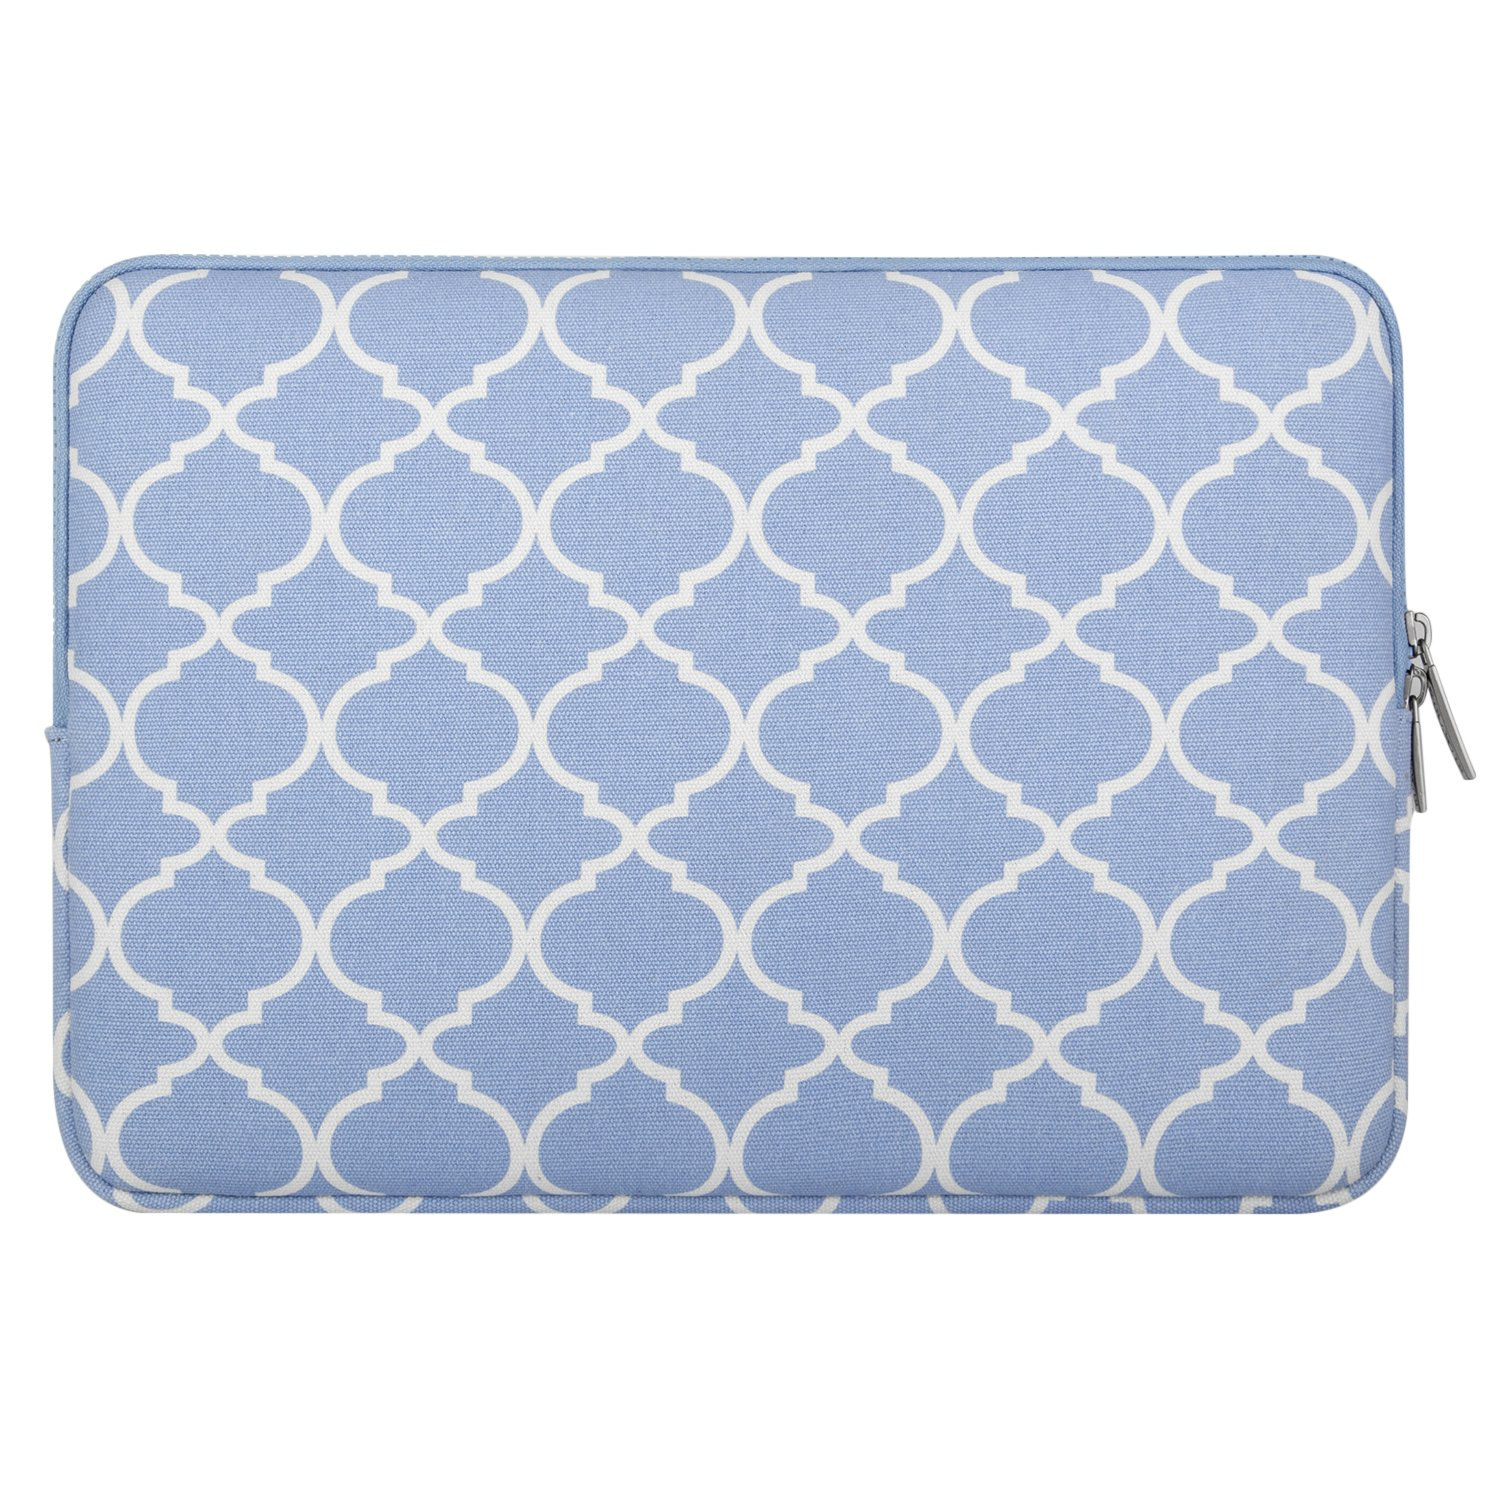 392dba57276f MOSISO Laptop Sleeve Bag Compatible 13-13.3 Inch MacBook Pro, MacBook Air,  Notebook Computer with Small Case, Canvas Geometric Pattern Protective ...